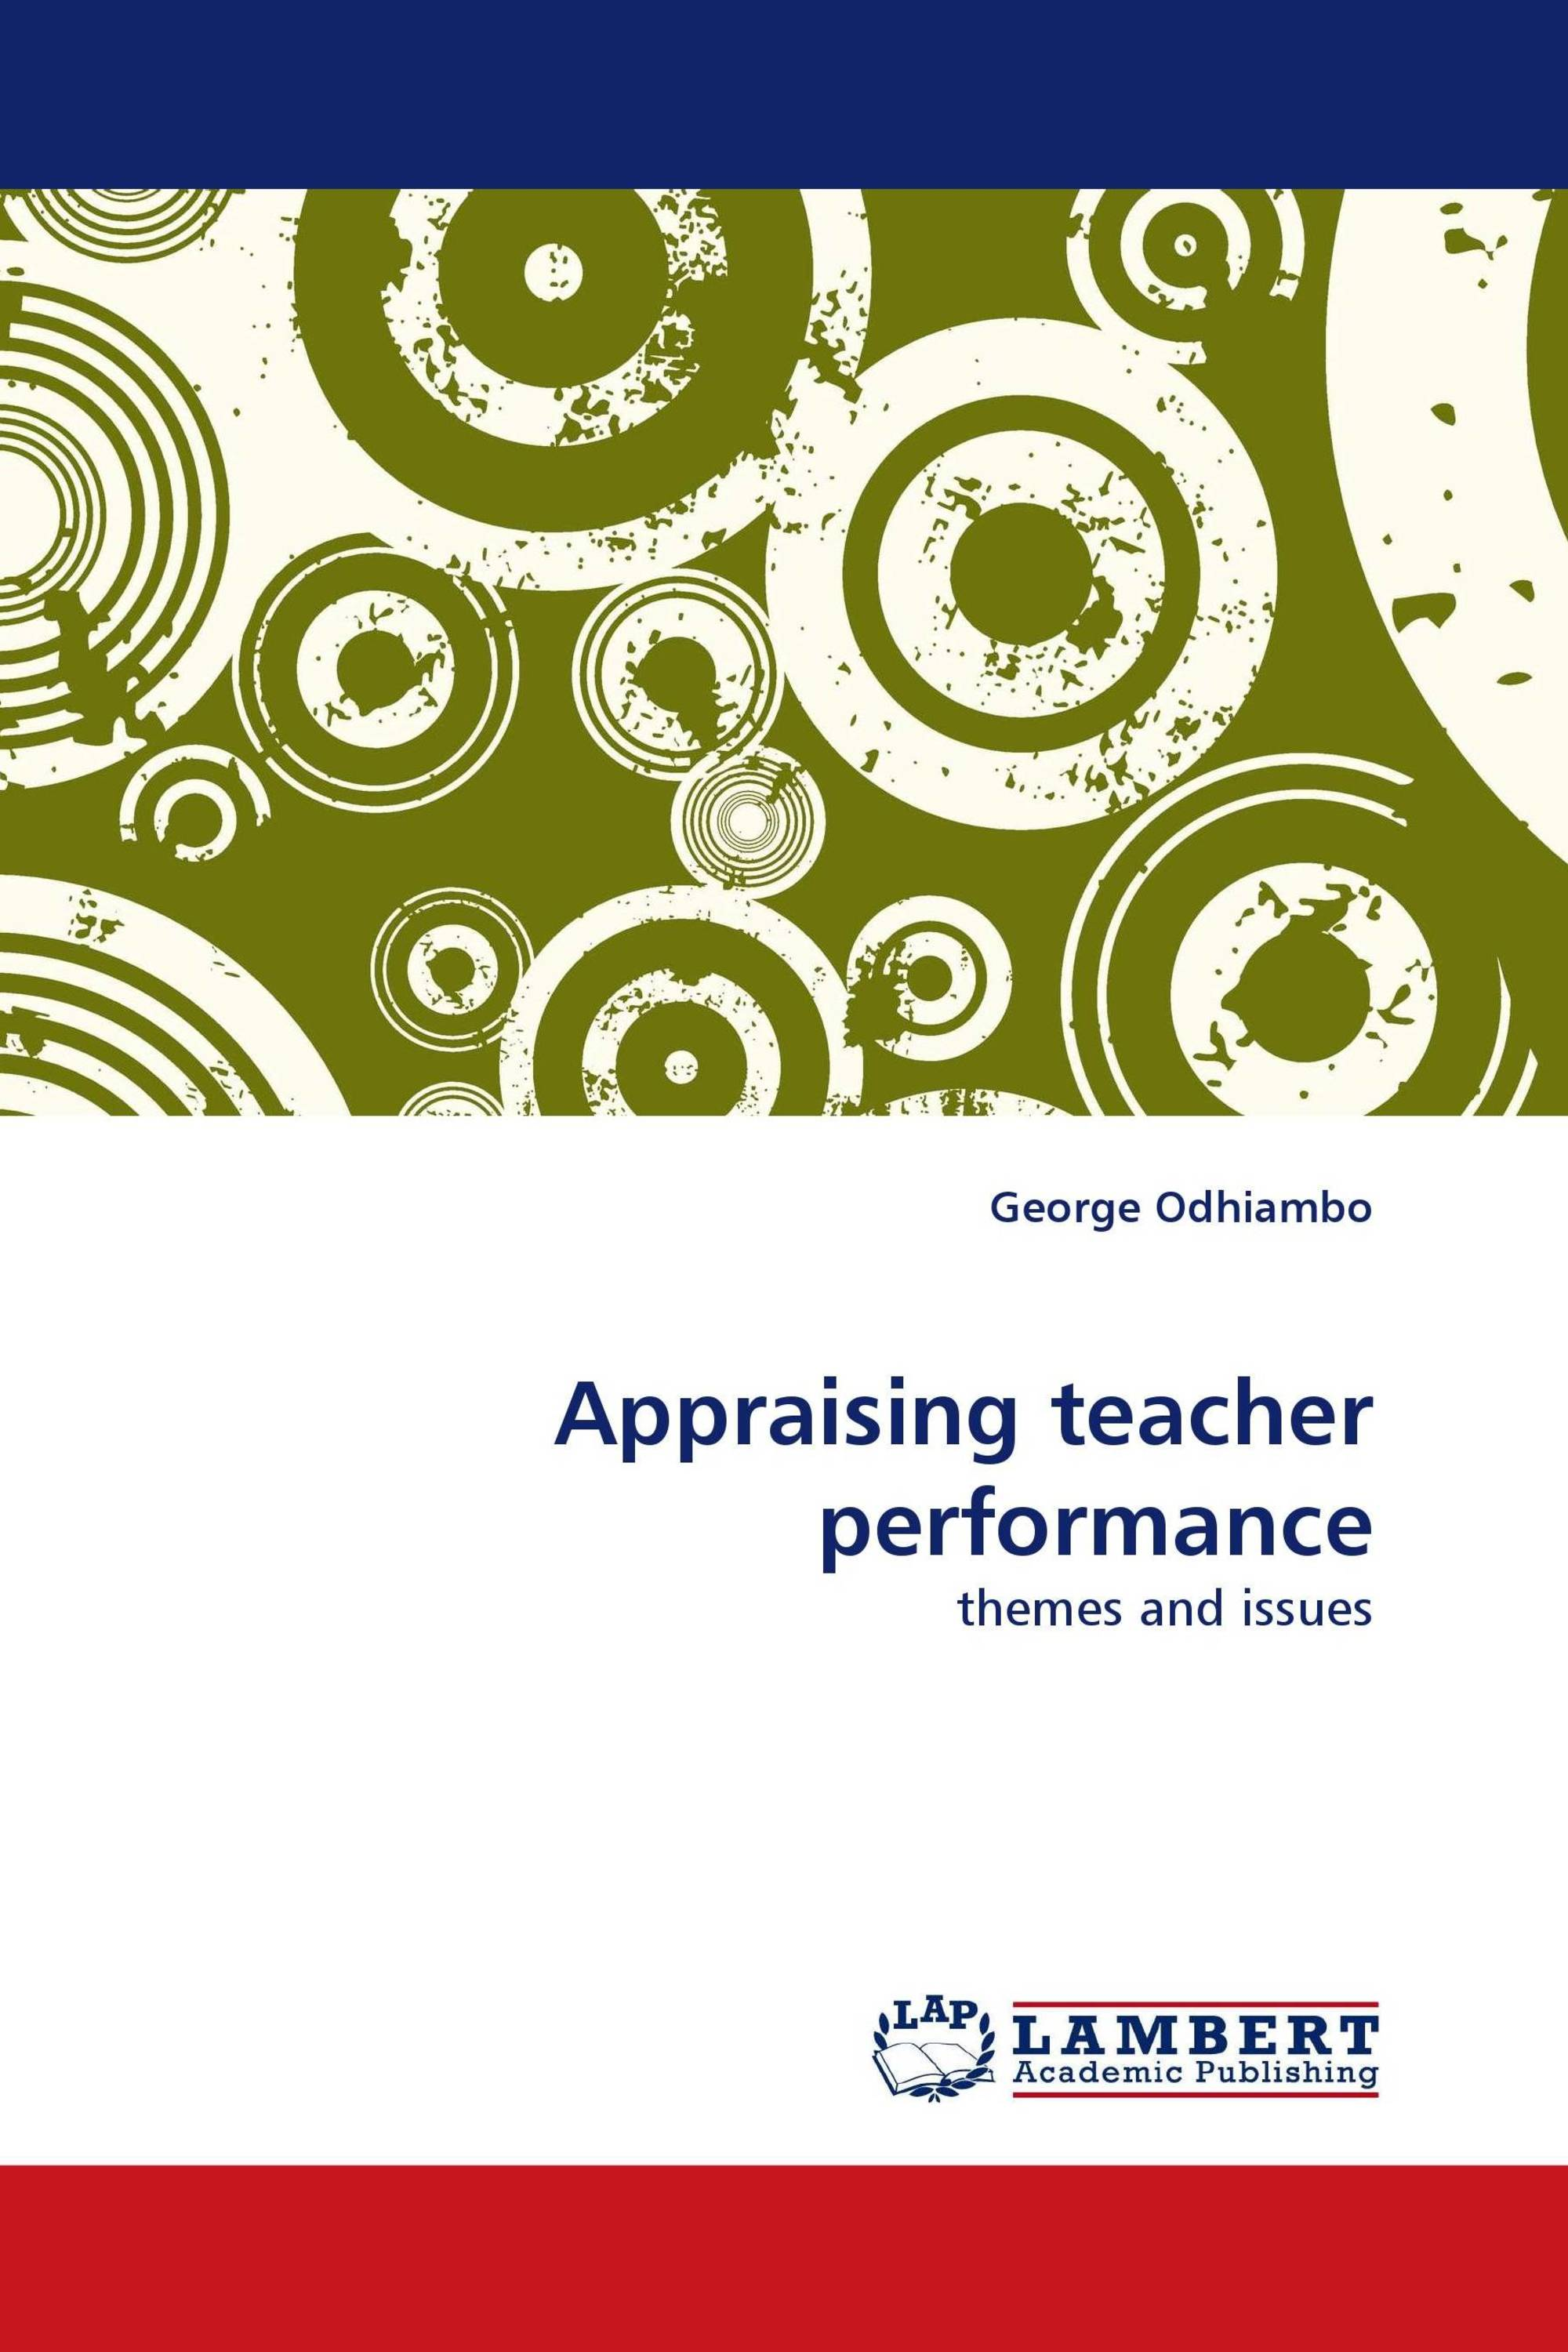 Appraising teacher performance